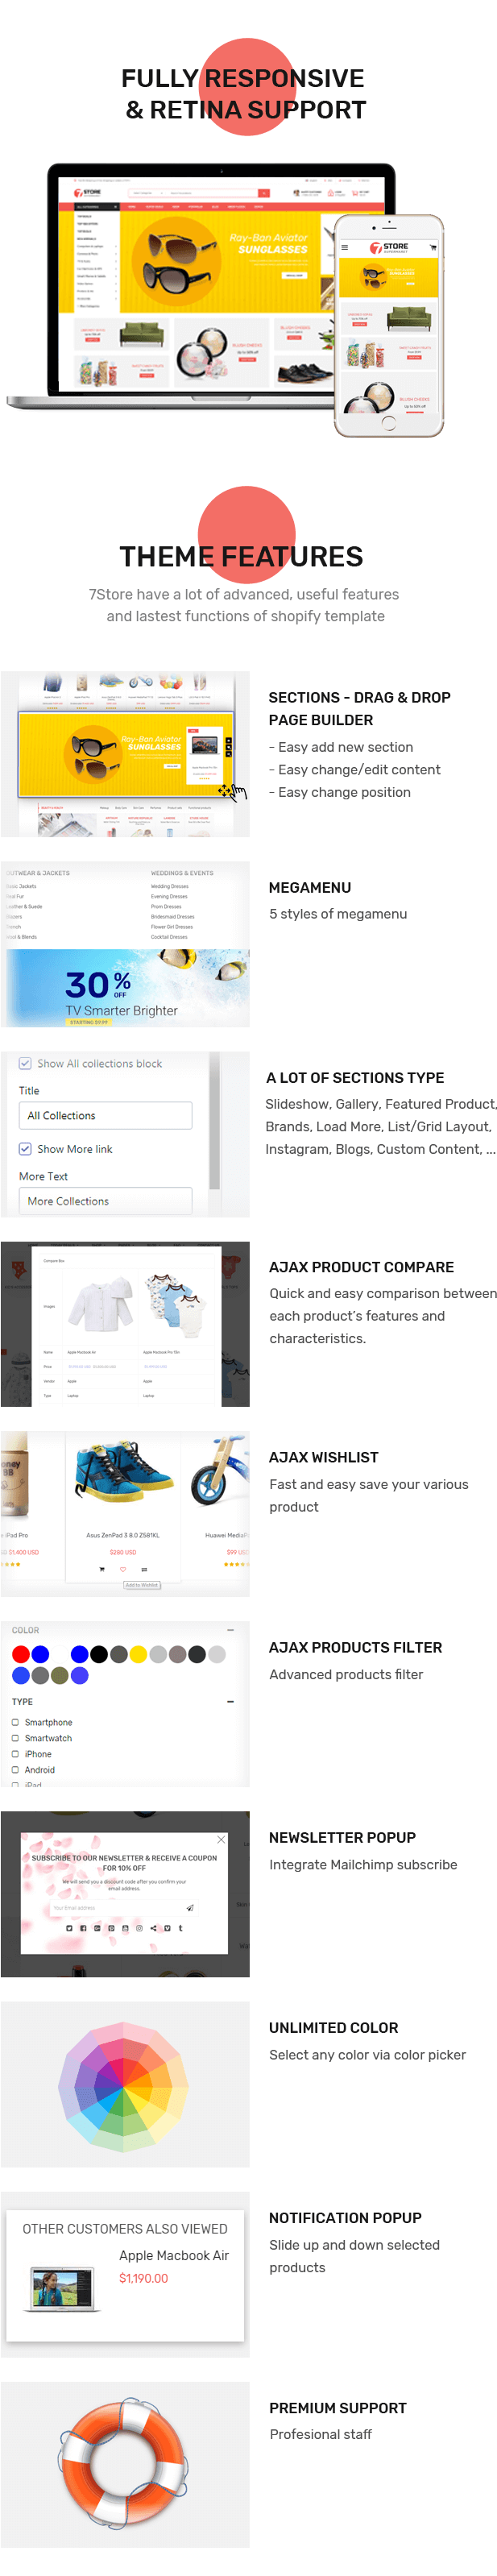 7store Features